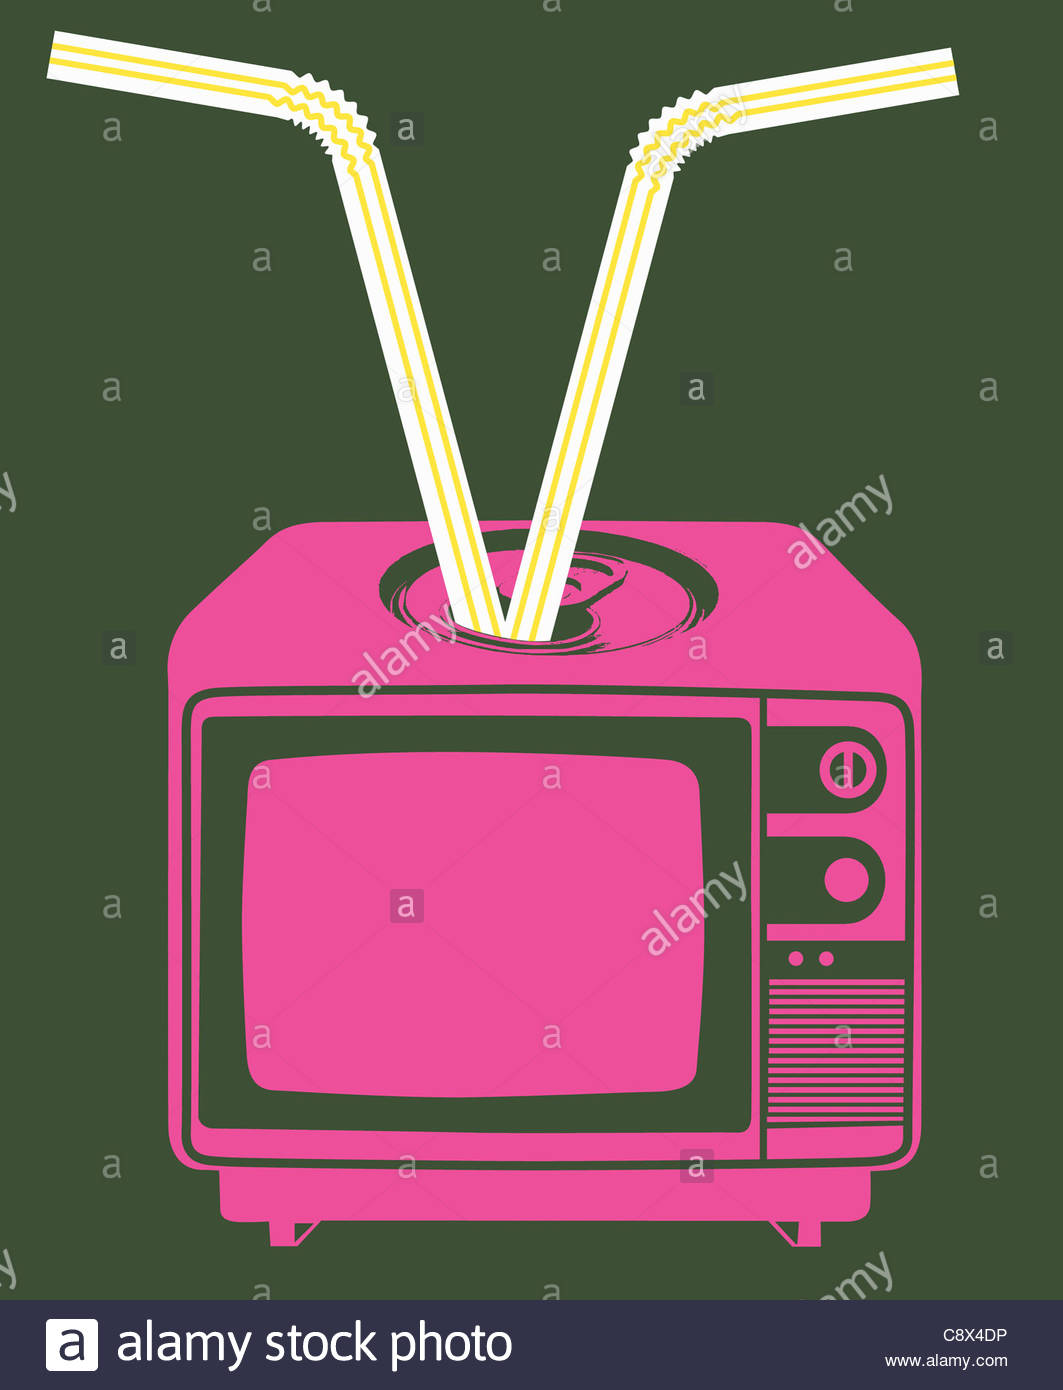 Drinking straws coming out of television - Stock Image